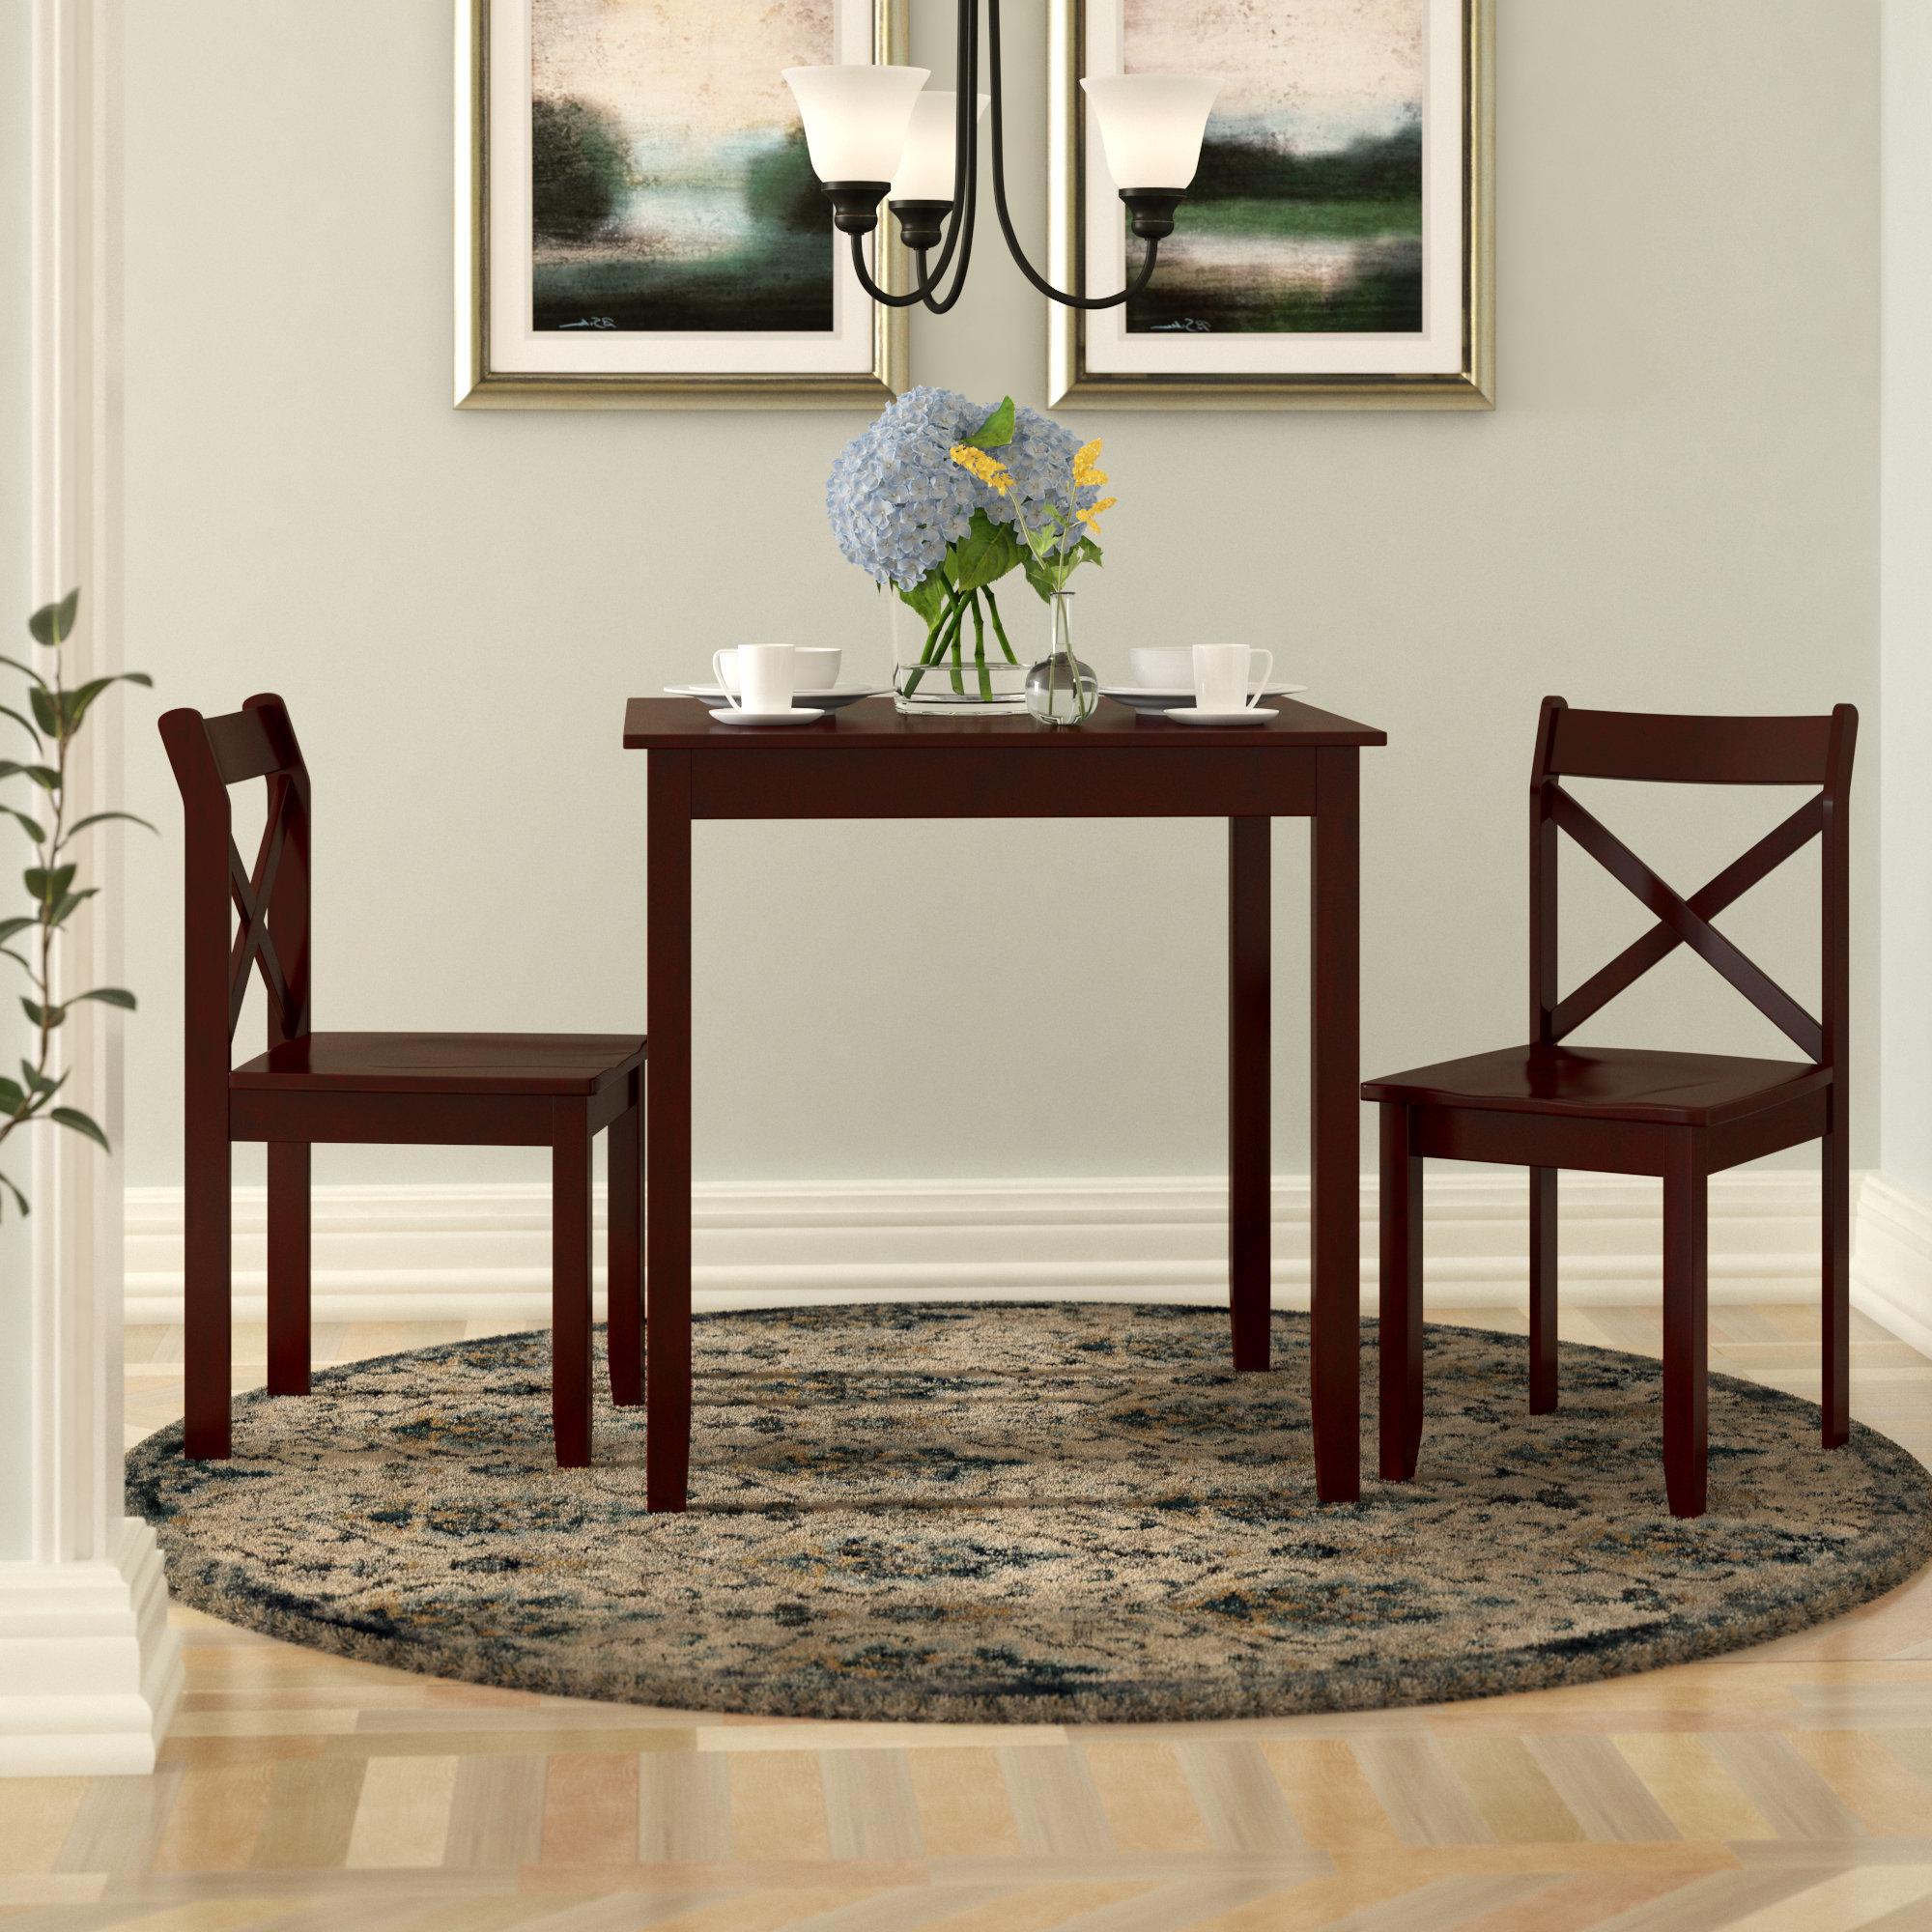 Flossmoor 3 Piece Dining Set Throughout Most Recently Released Tenney 3 Piece Counter Height Dining Sets (Gallery 17 of 20)